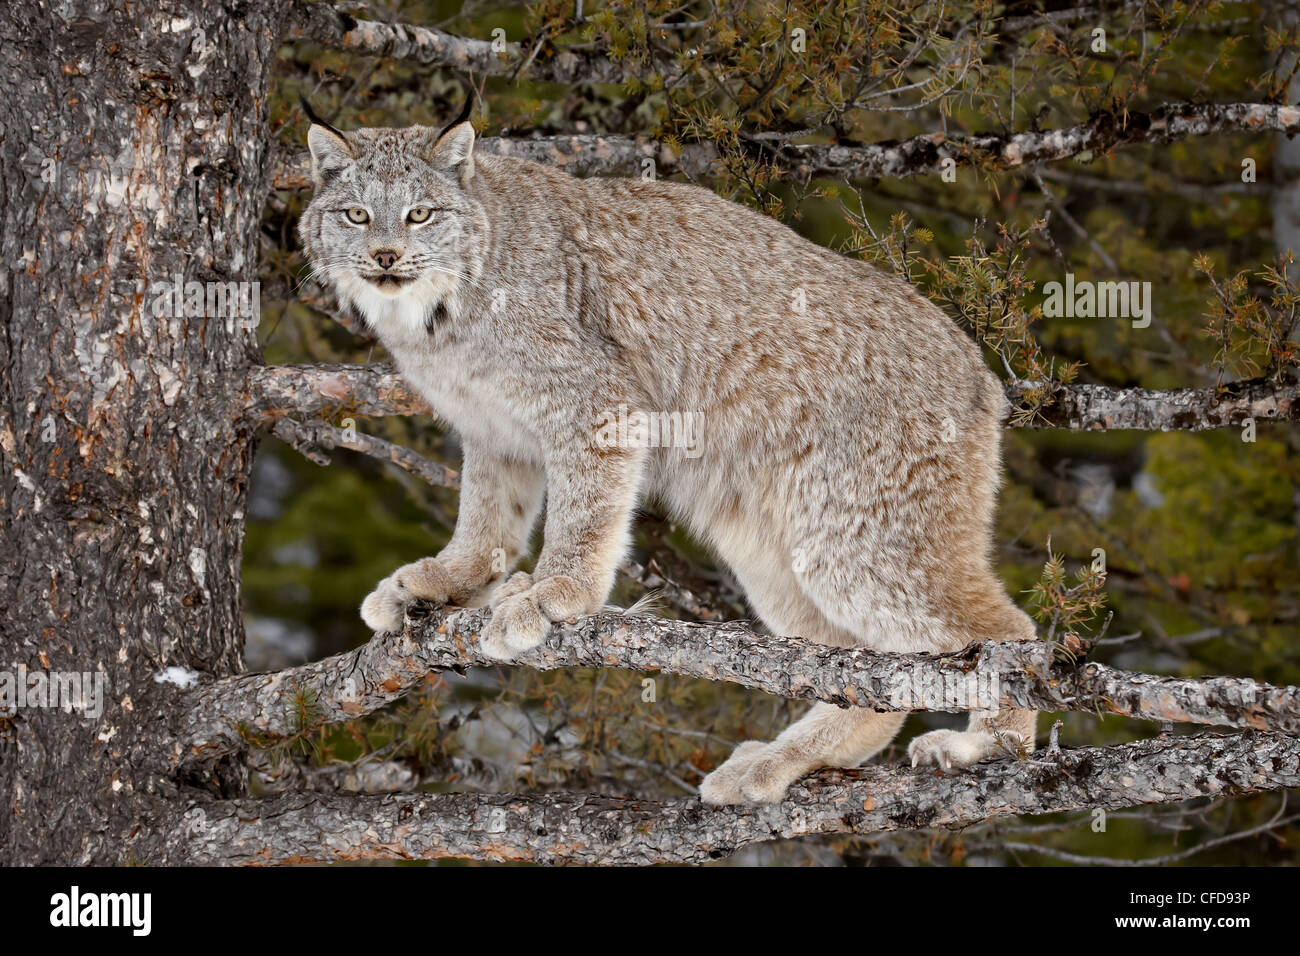 Canadian Lynx (Lynx canadensis) in a tree, in captivity, near Bozeman, Montana, United States of America, - Stock Image